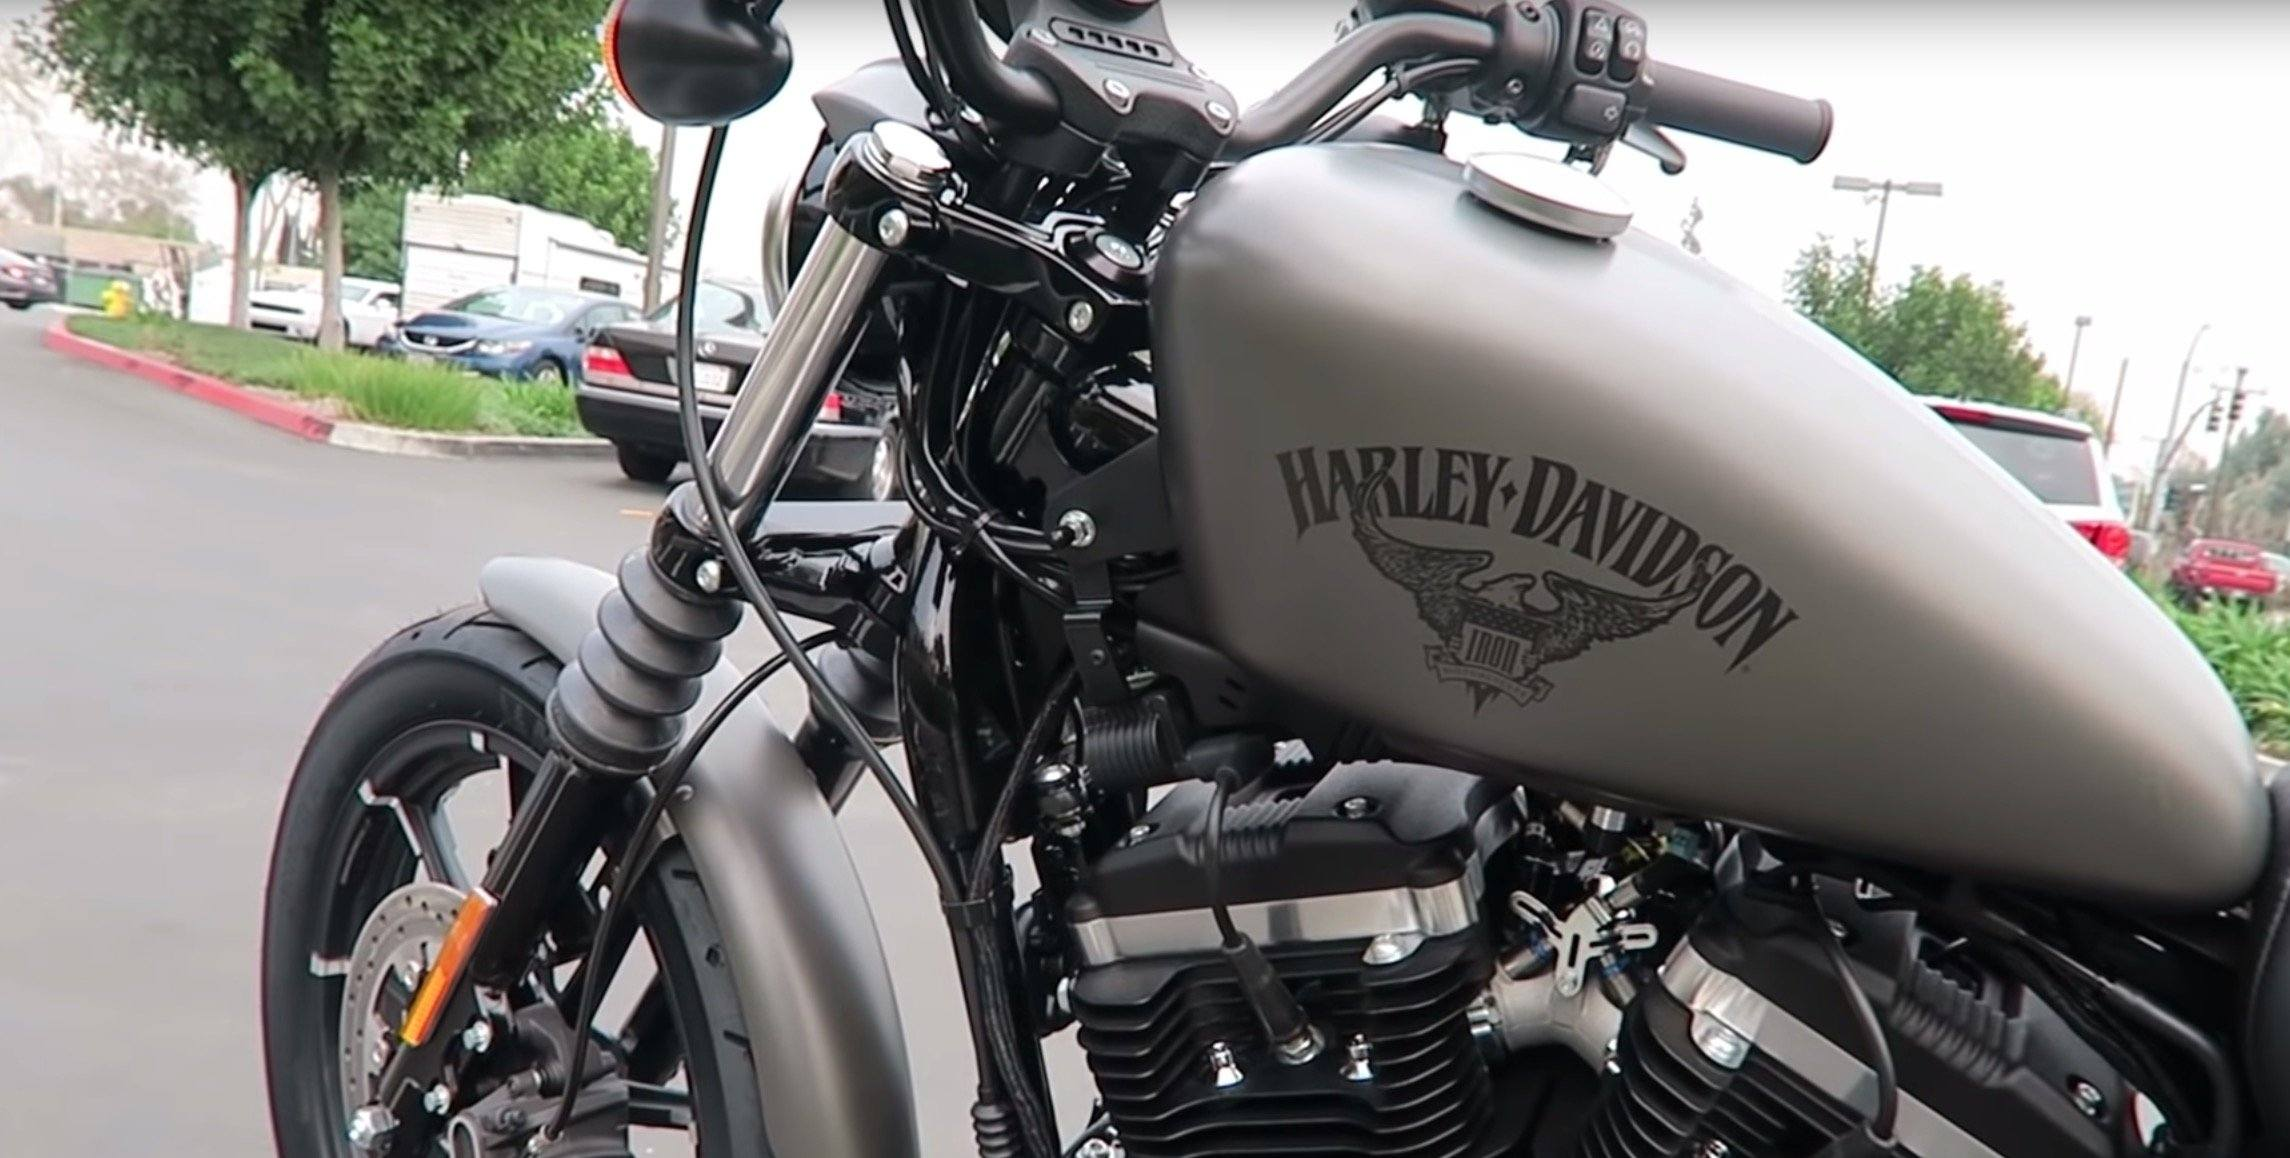 6 Facts About The Harley Davidson Sportster Iron 883R